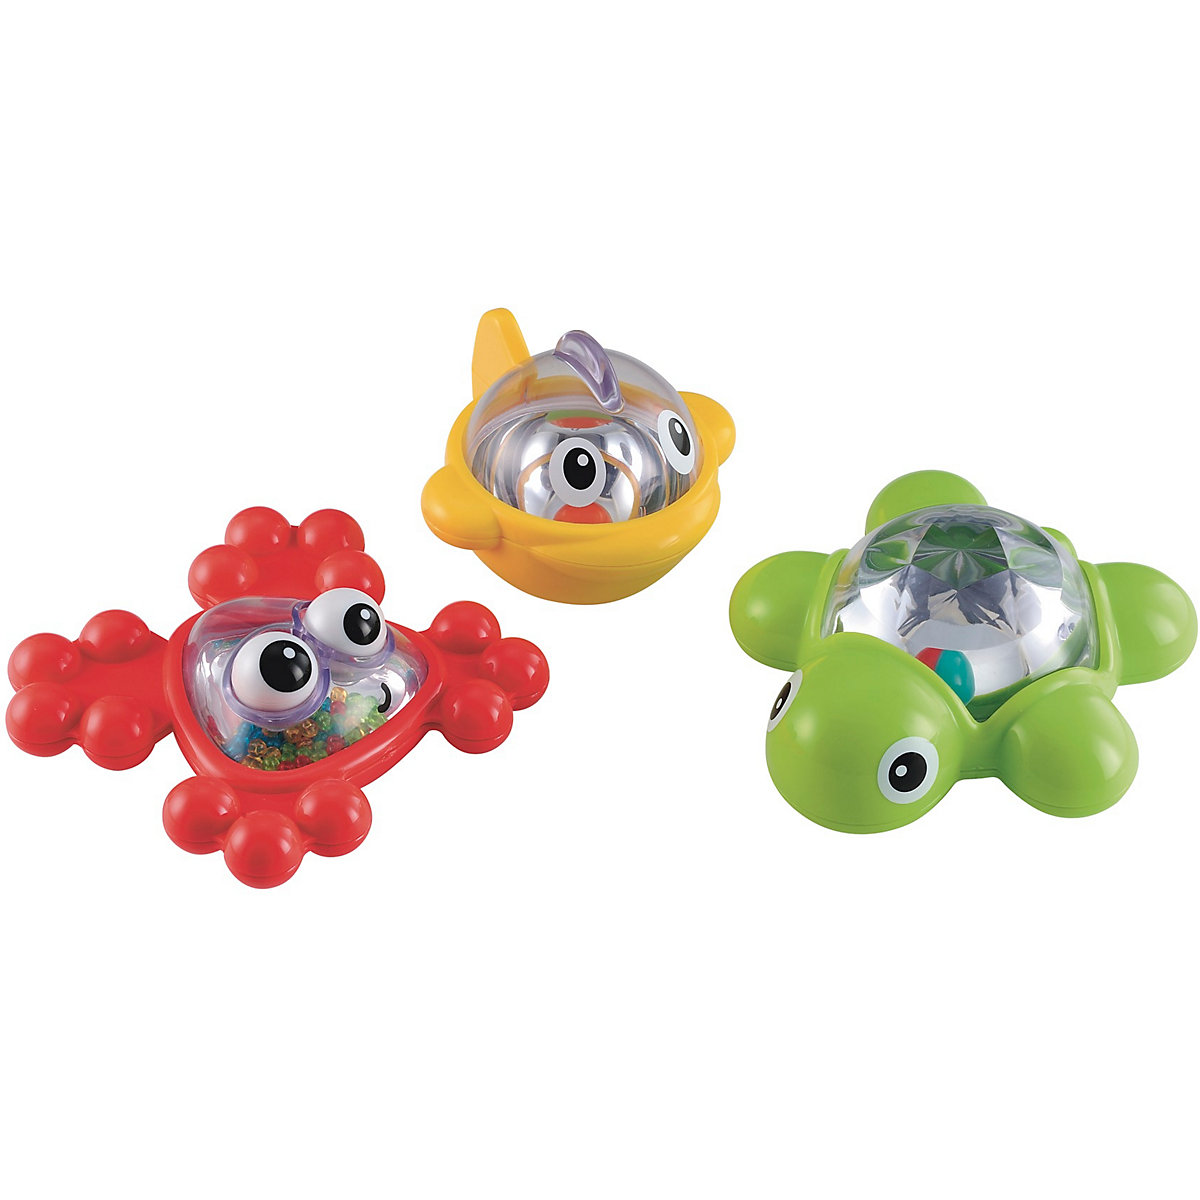 New ELC Boys and Girls Bath Rattle and Roll Friends Toy From 6 months - Early Learning Centre Gifts